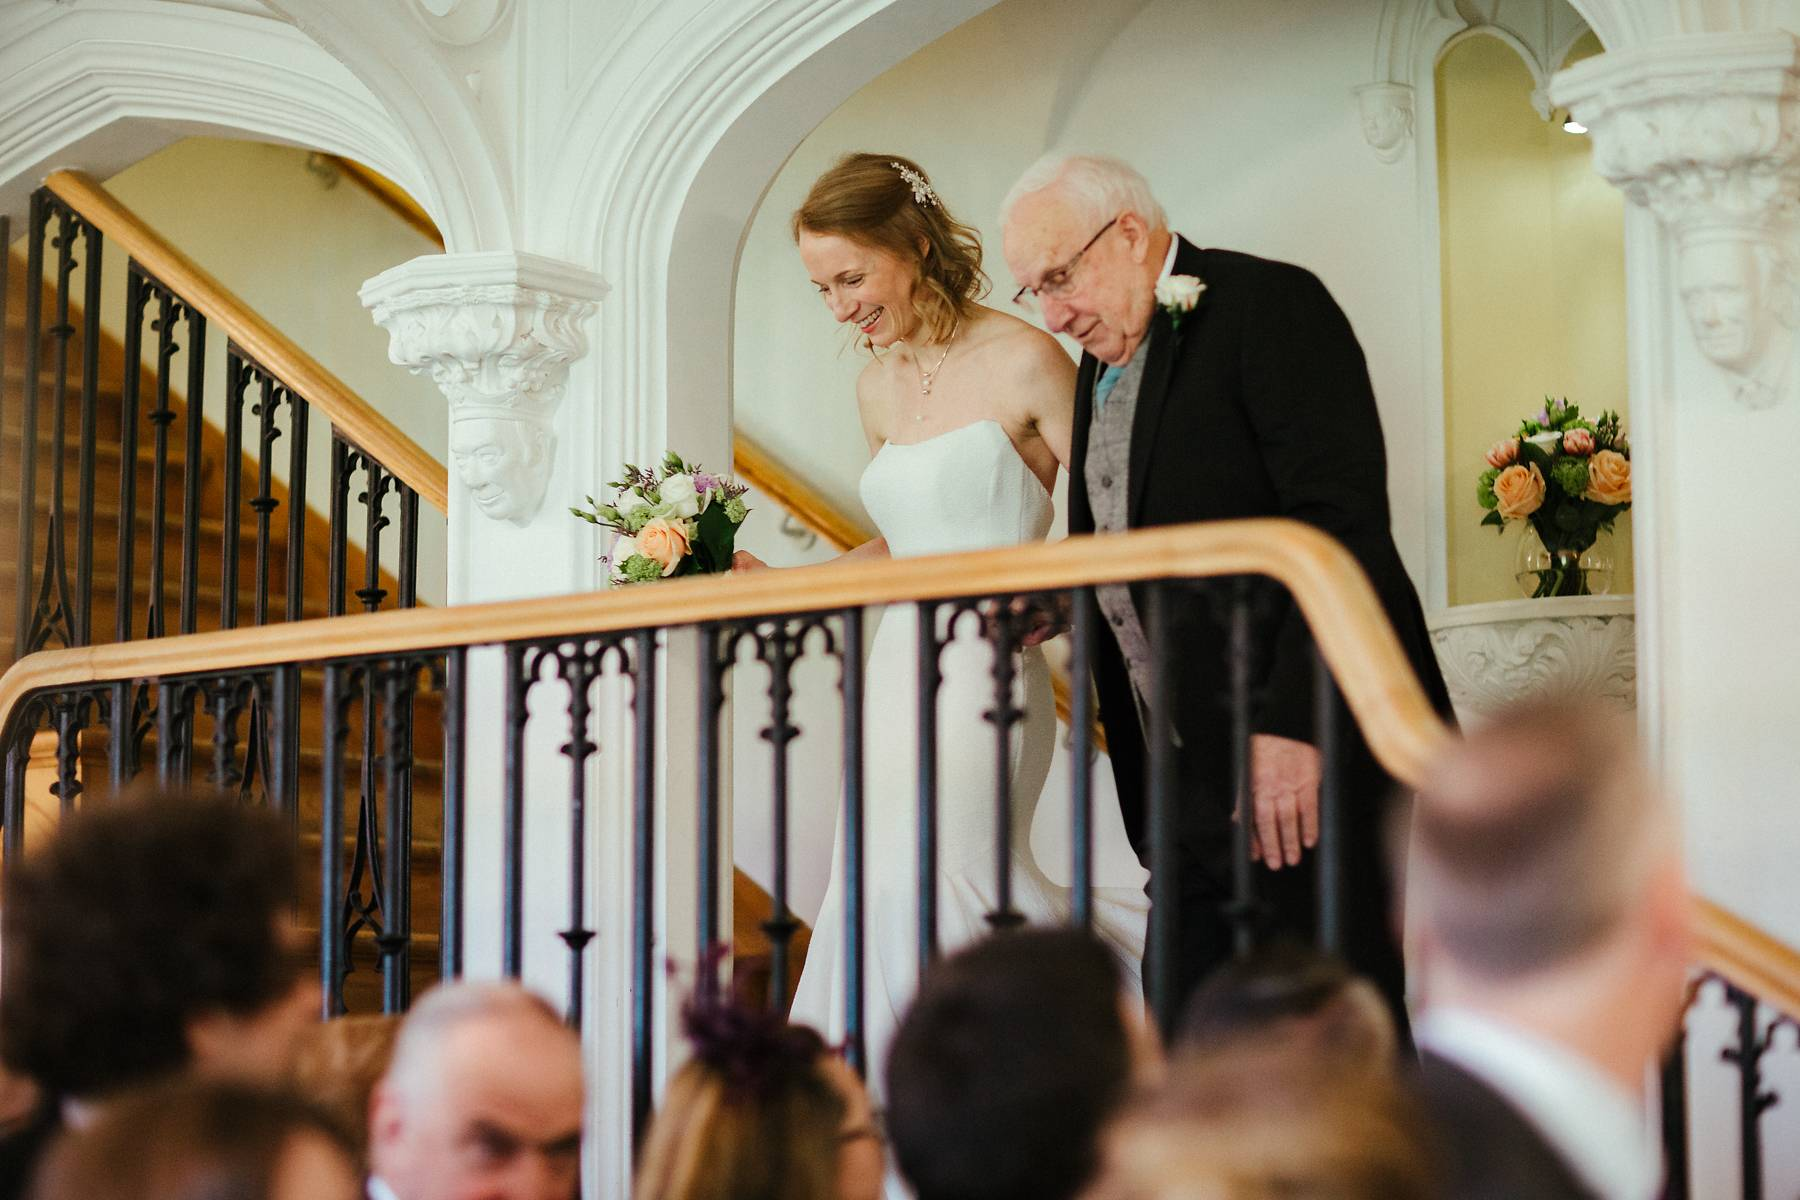 Walking down the wedding aisle with an elderly dad